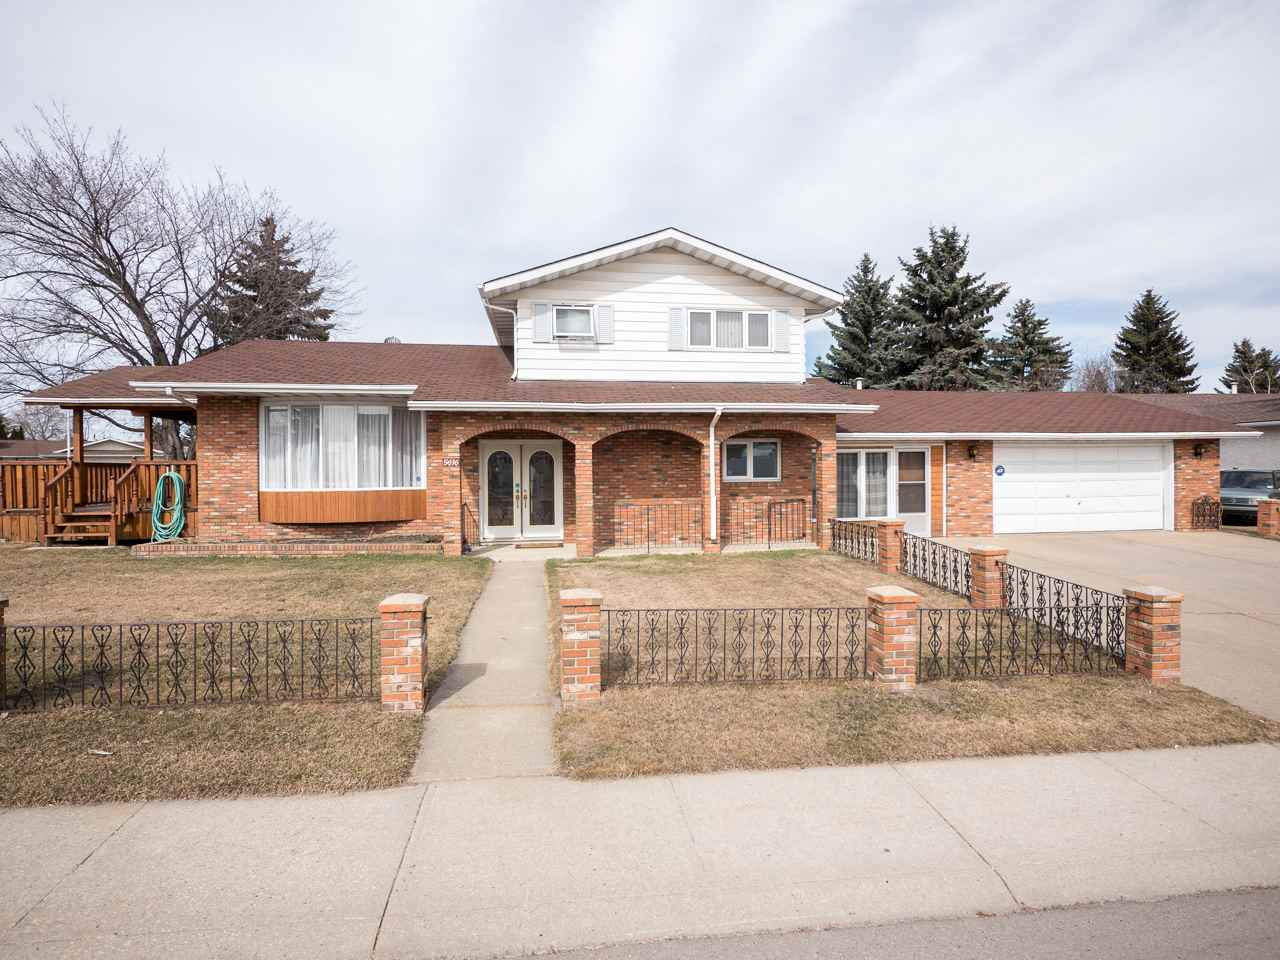 5616 150 Avenue NW, 4 bed, 2.2 bath, at $399,900